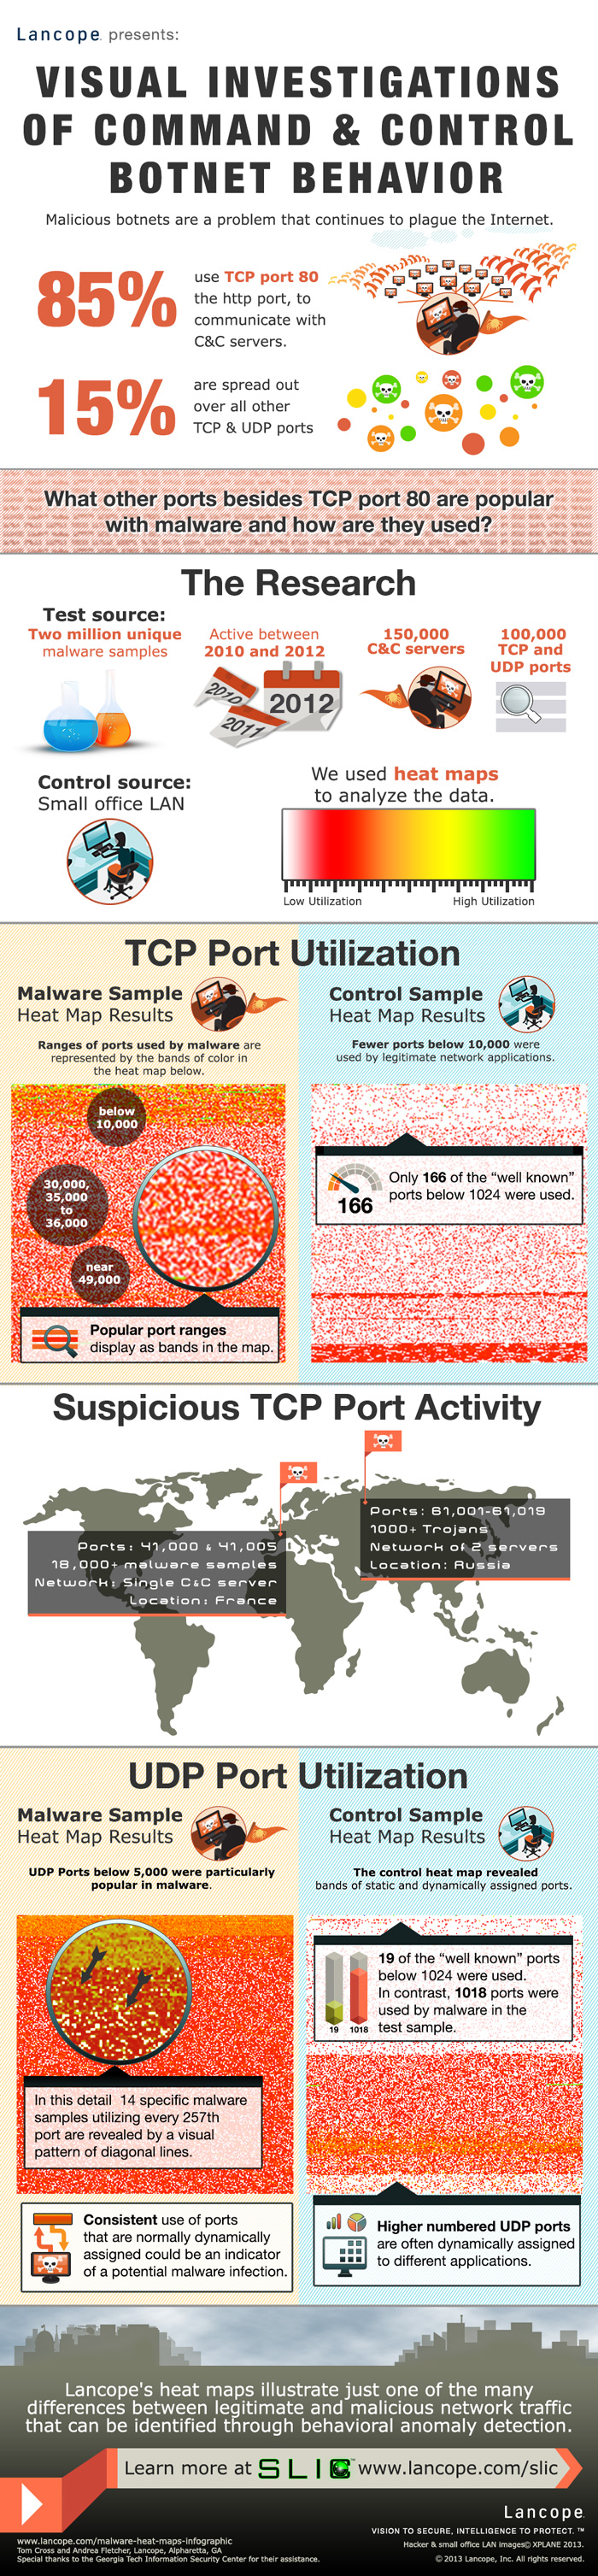 Visual-Investigations-of-Command-and-Control-Botnet-Behavior-Infographic-v1004-700px